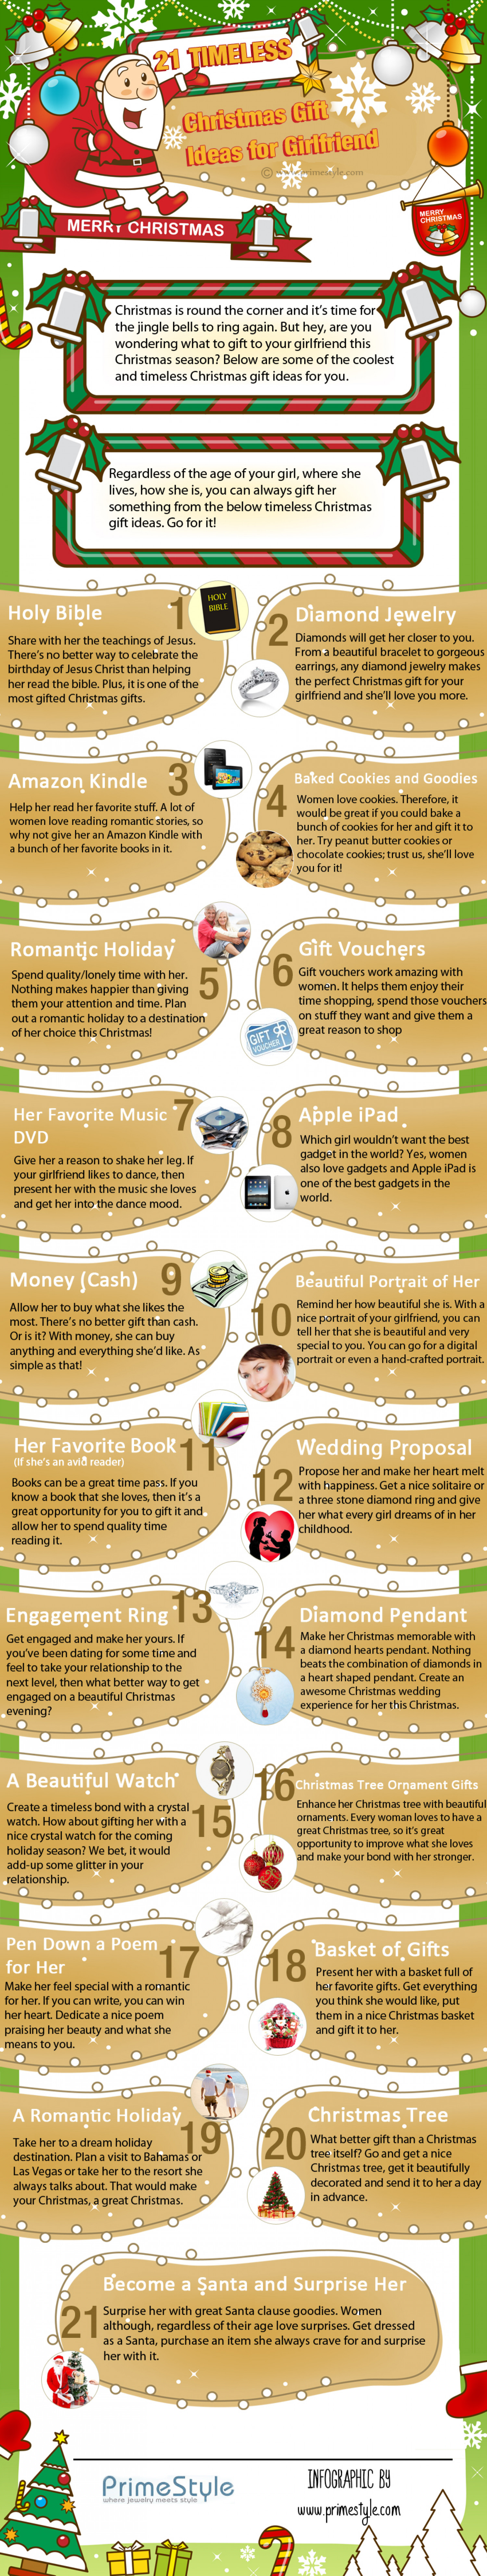 21 Timeless Christmas Gift Ideas for Girlfriend Infographic